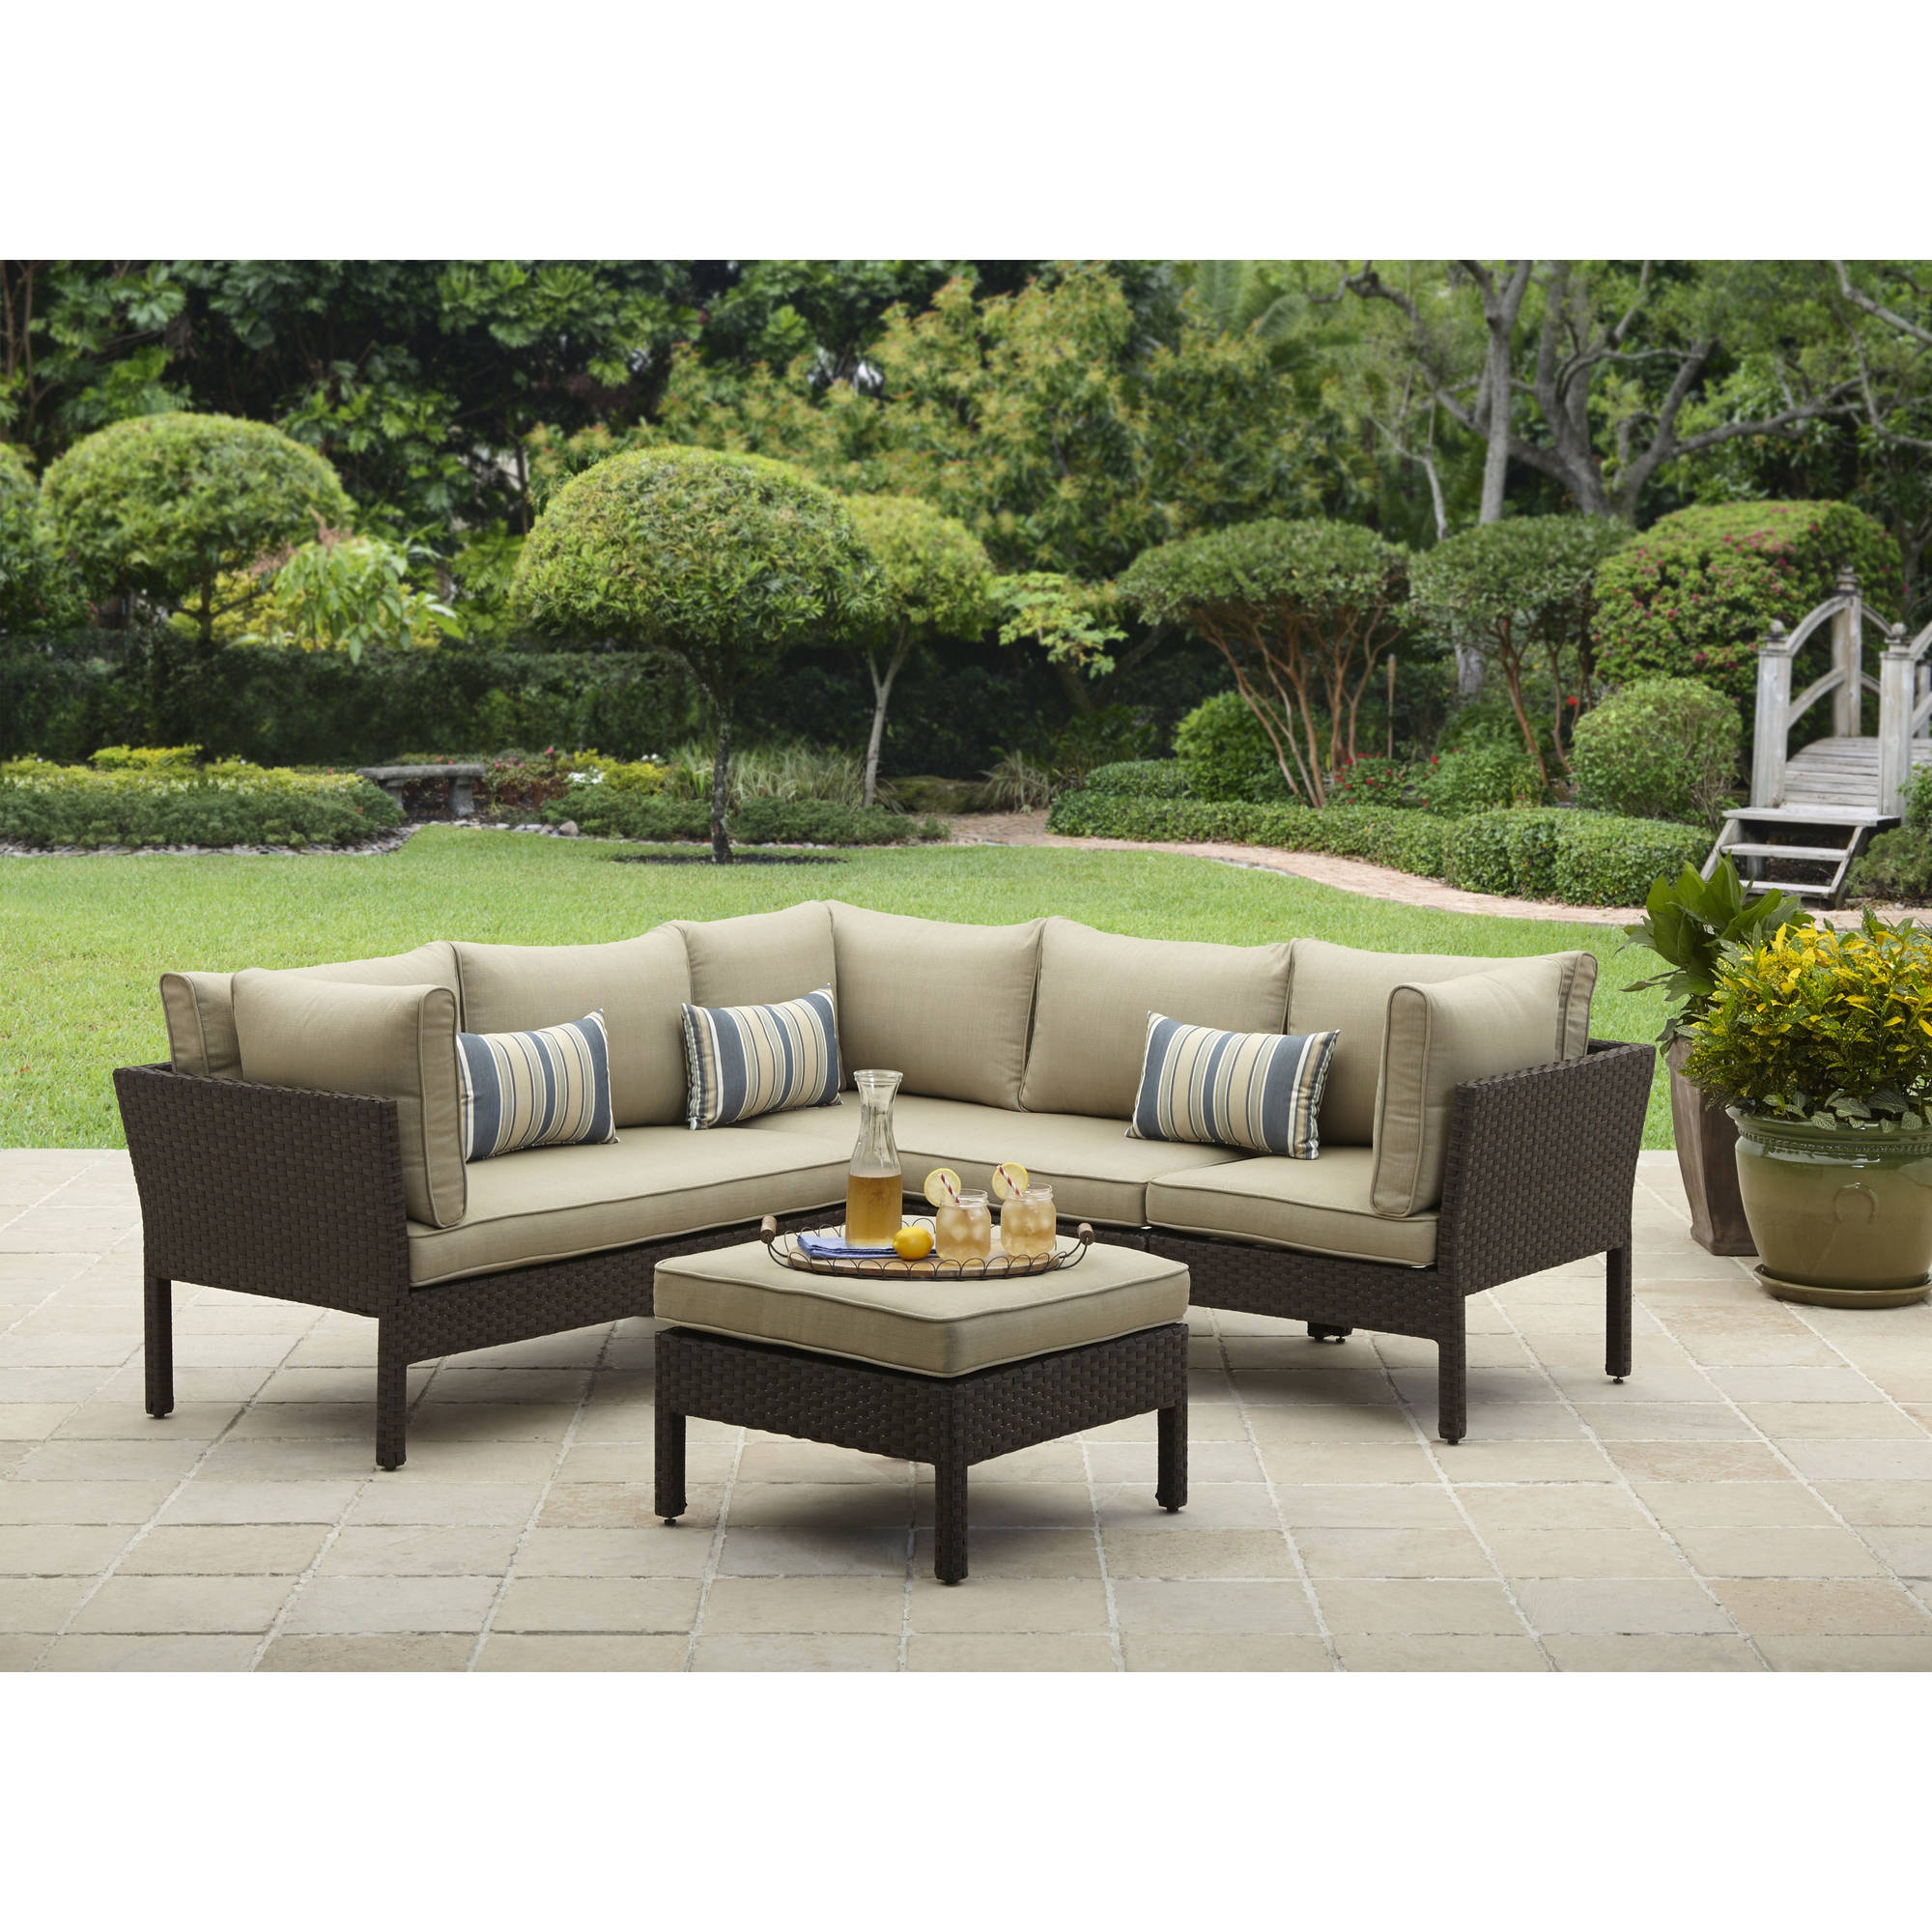 . Better Homes and Gardens Avila Beach 4 Piece Sectional   Walmart com